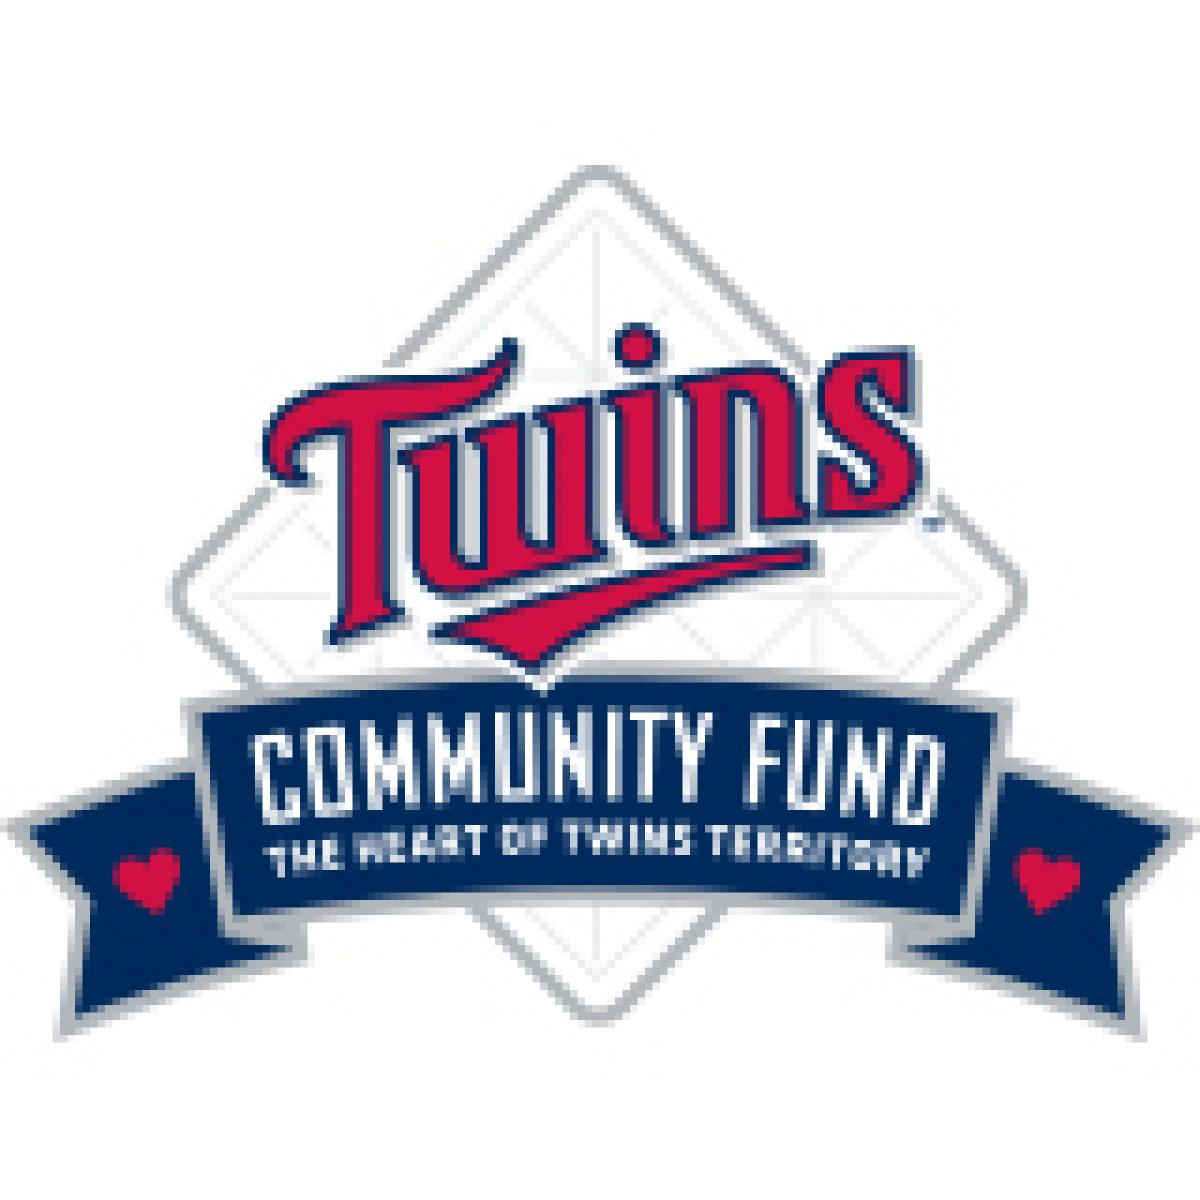 Twins Community Fund - Awards City of Cologne and Cologne Baseball Association $10,000 grant